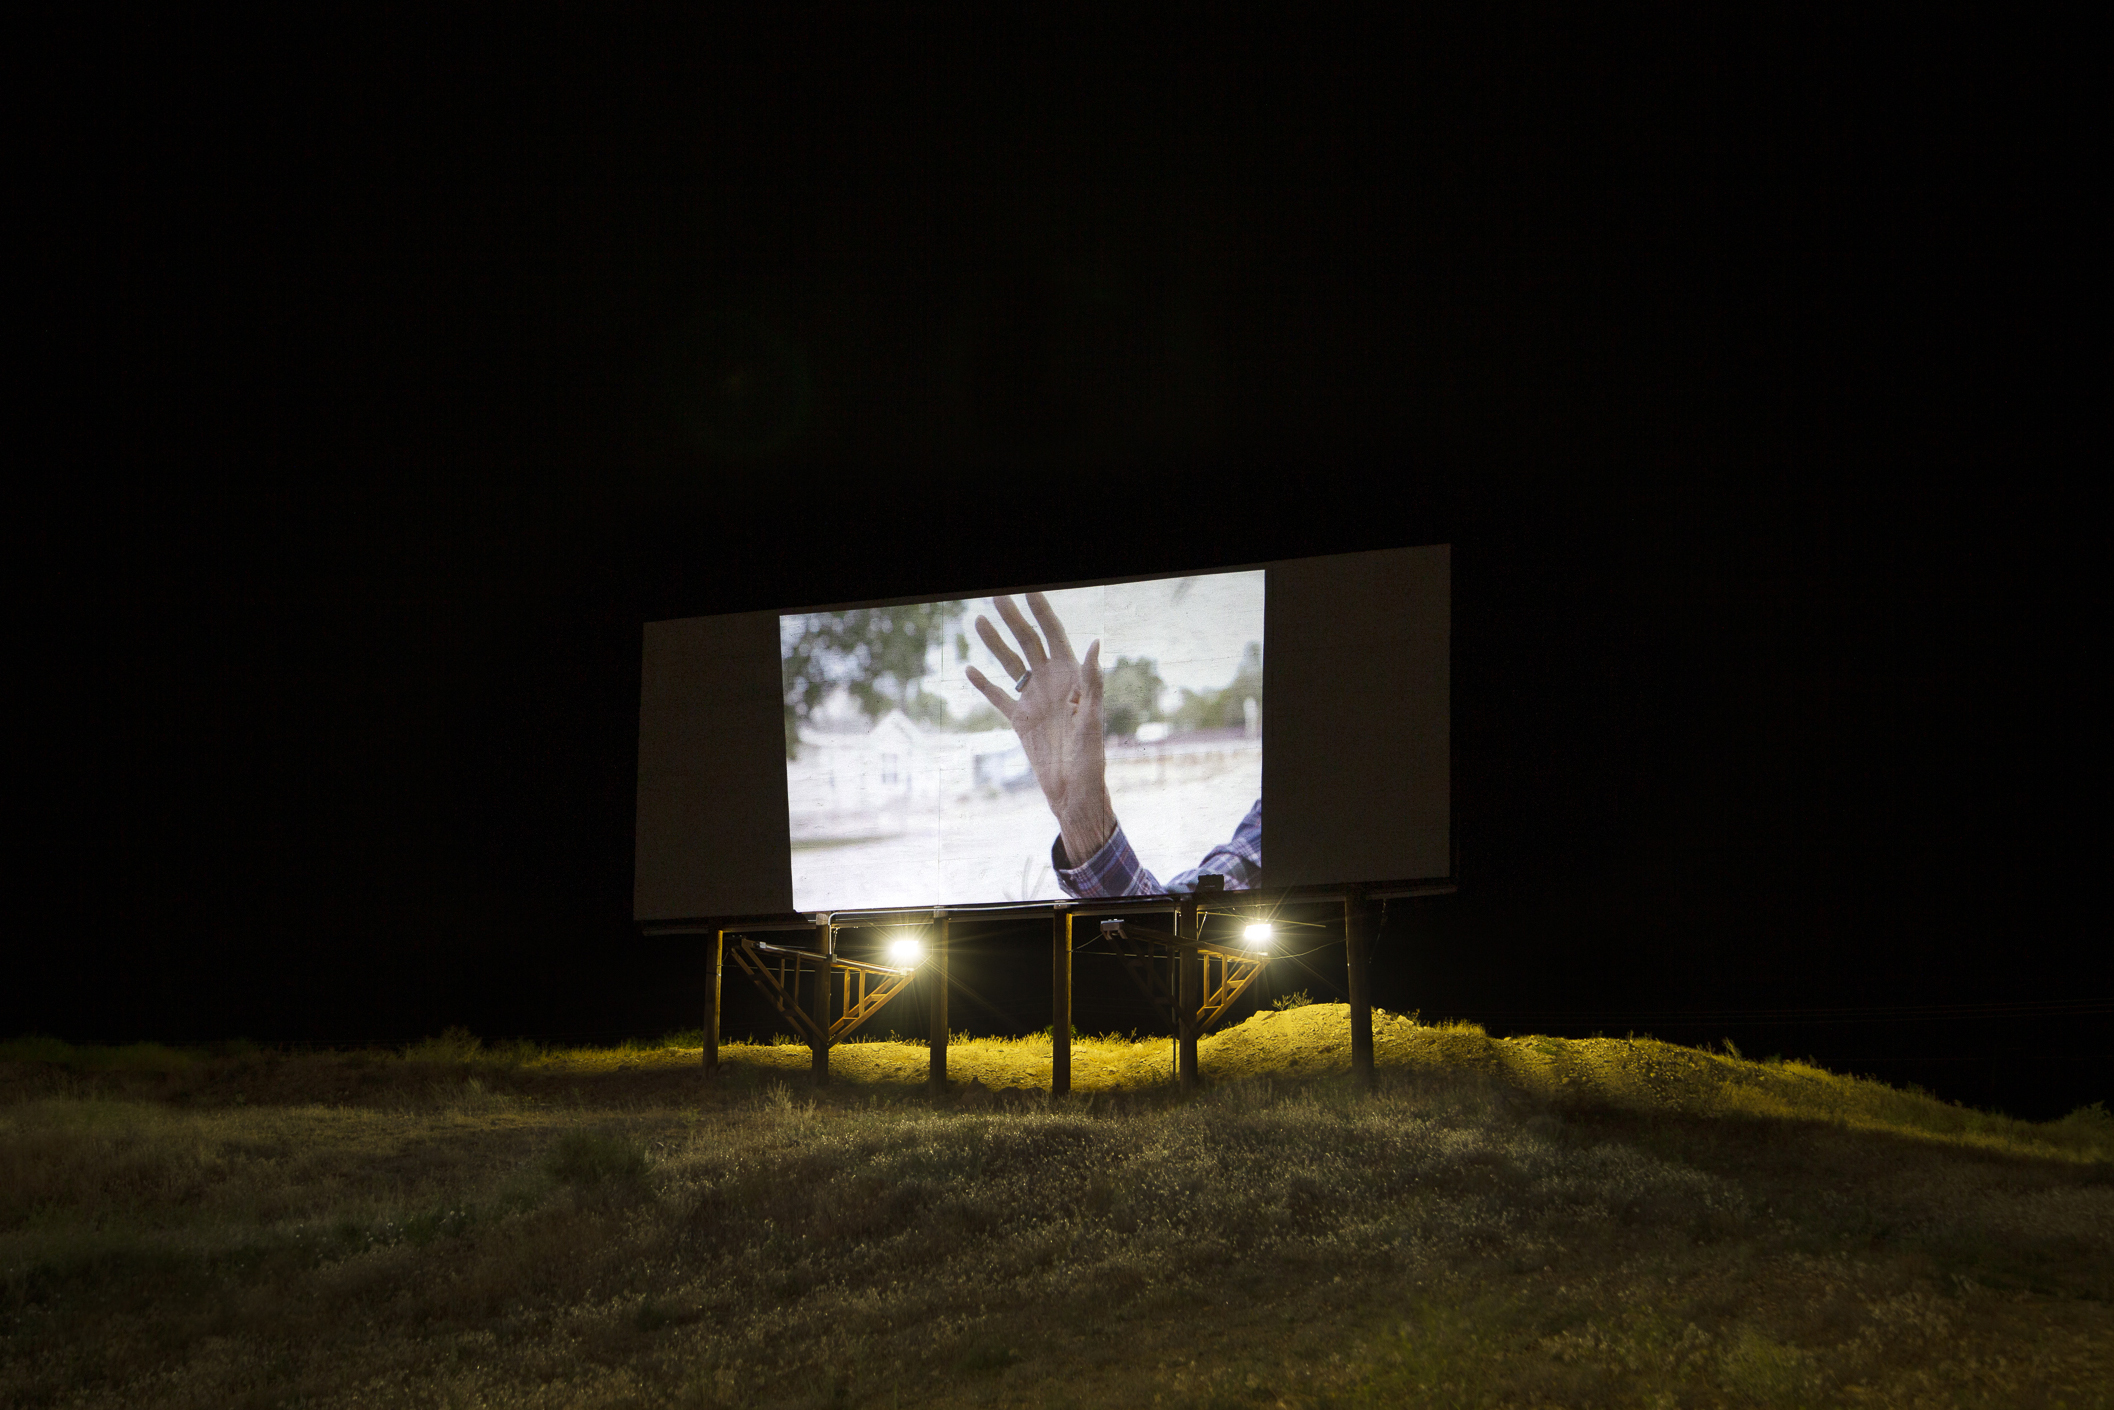 Calista Lyon, Localized Gesture, 2019, video projected on a billboard